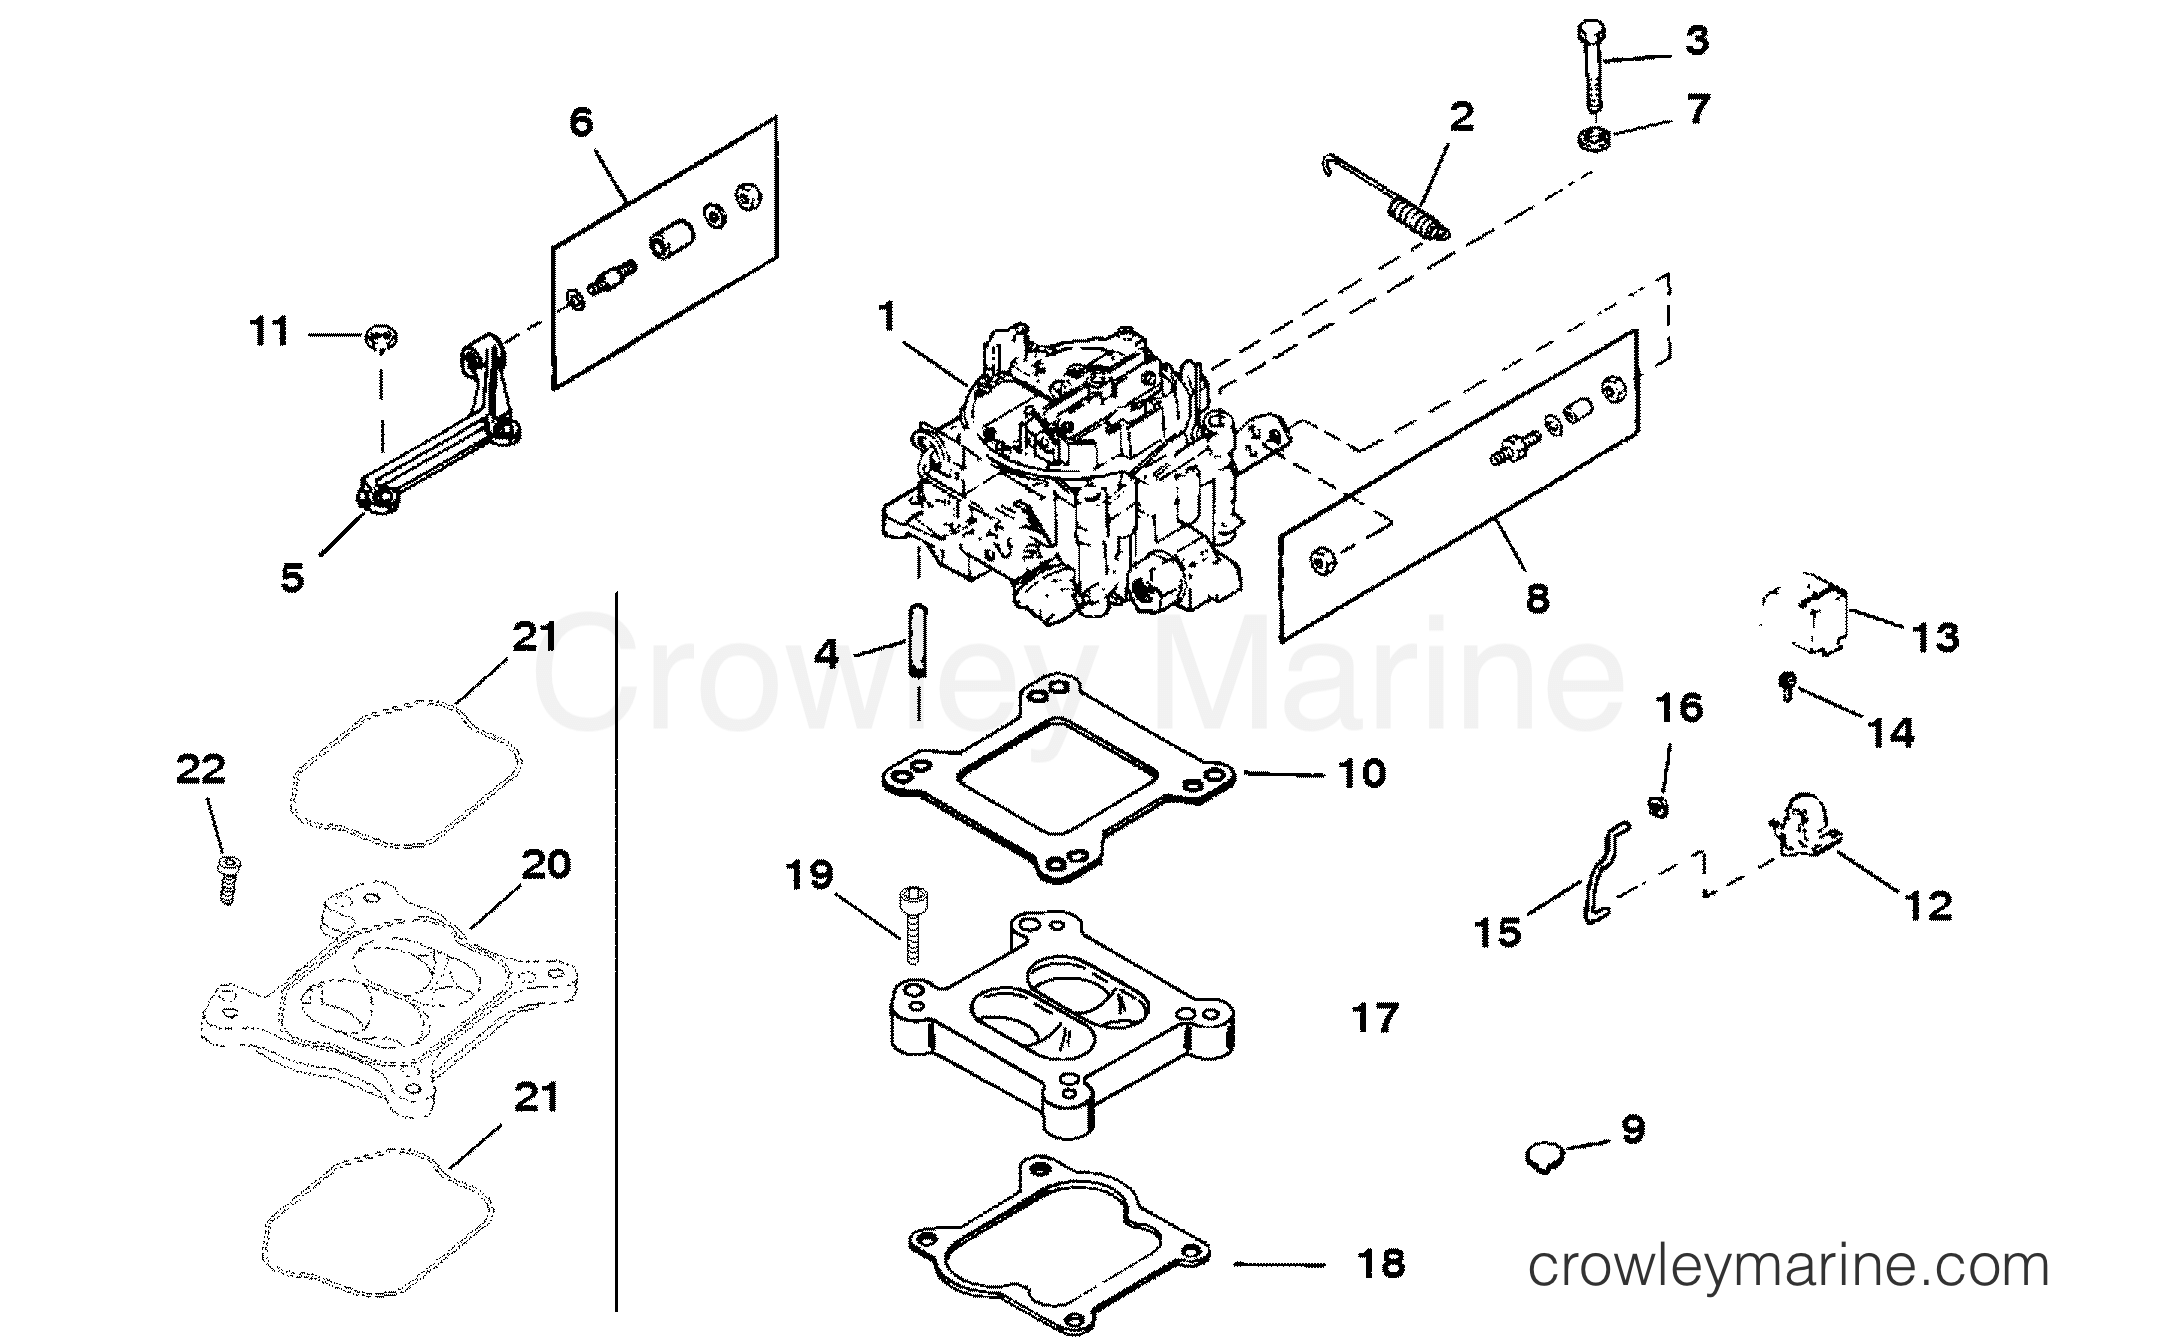 1993 Mercury Inboard Engine 5.7L - 3572234FS - CARBURETOR AND LINKAGE (SPACER MOUNTED) section